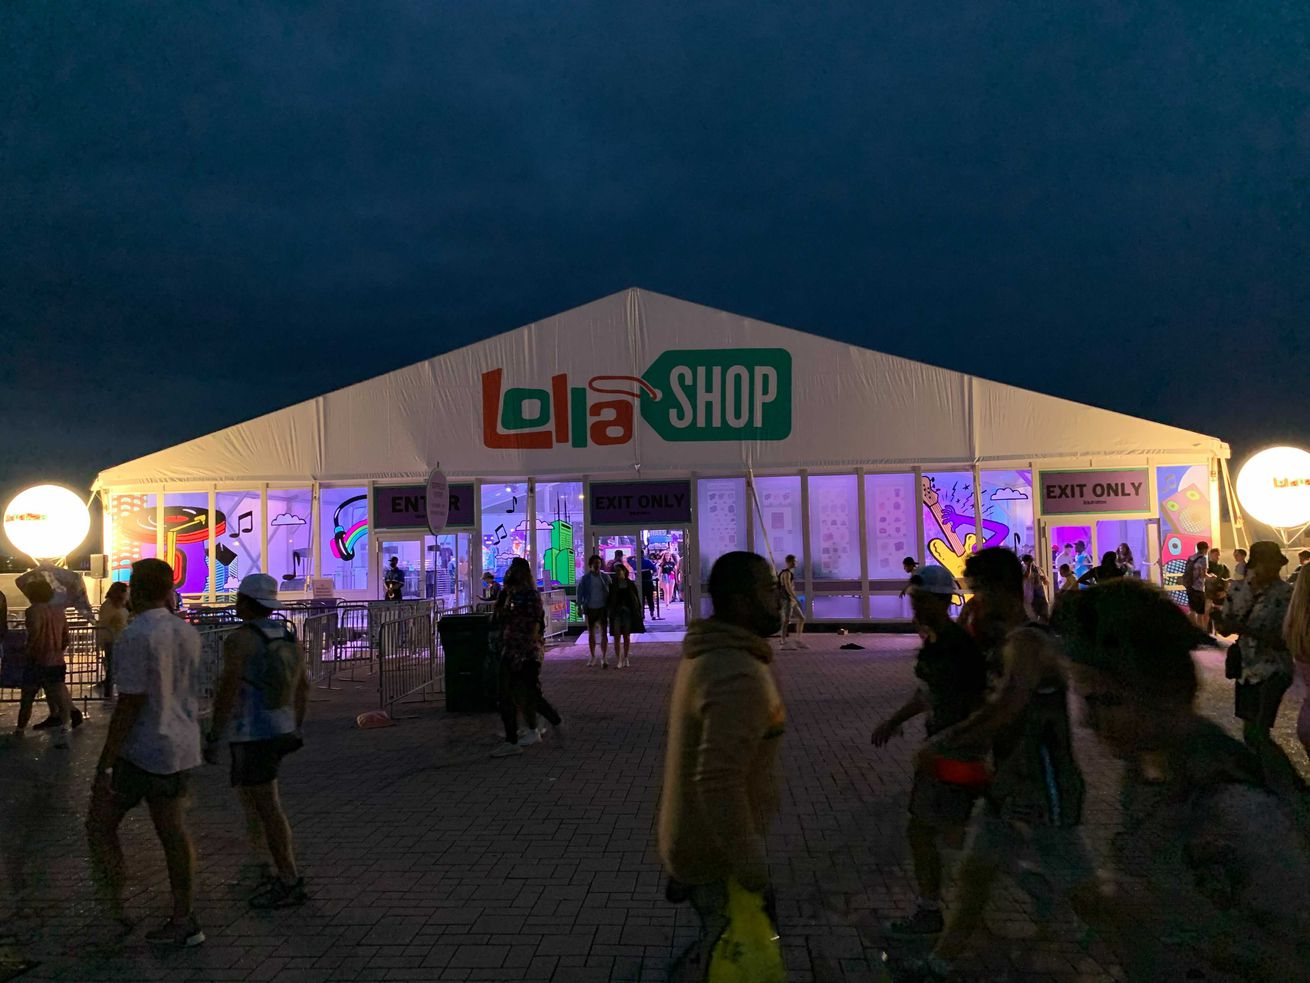 Starting Saturday, you'll need a mask to enter the merchandise shop at Lollapalooza in Grant Park.